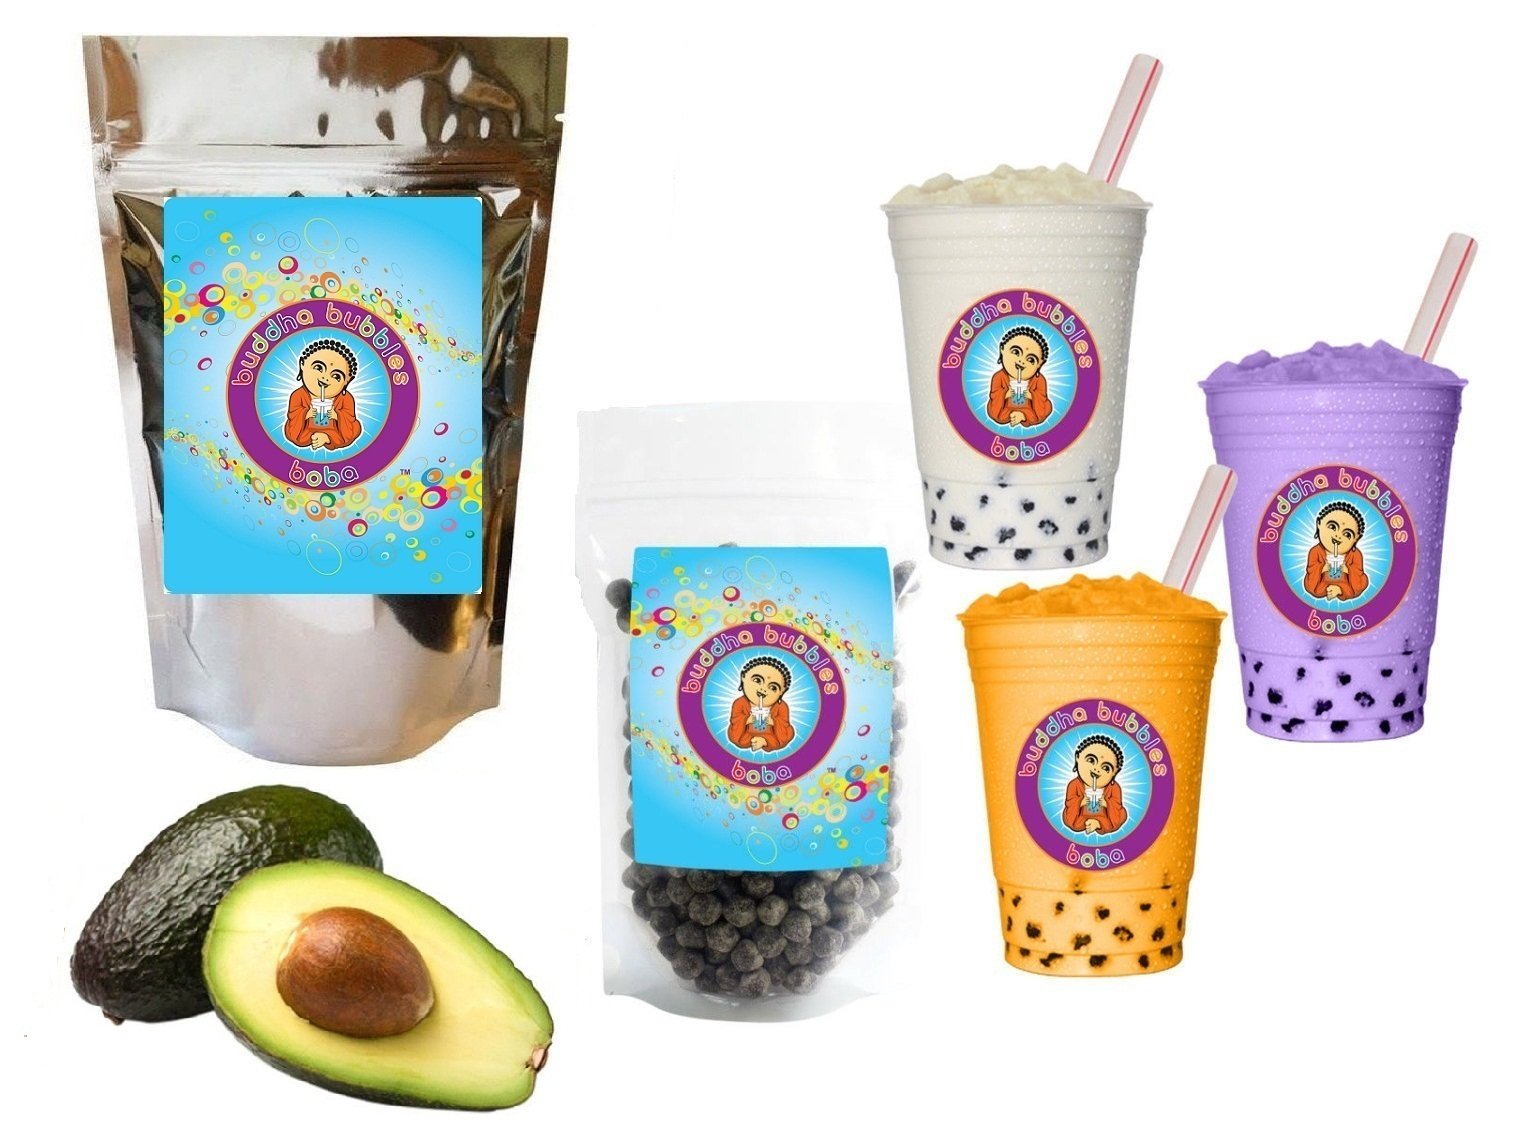 10+ Drinks Avocado Boba Tea Kit: Tea Powder, Tapioca Pearls & Straws By Buddha Bubbles Boba by Buddha Bubbles Boba